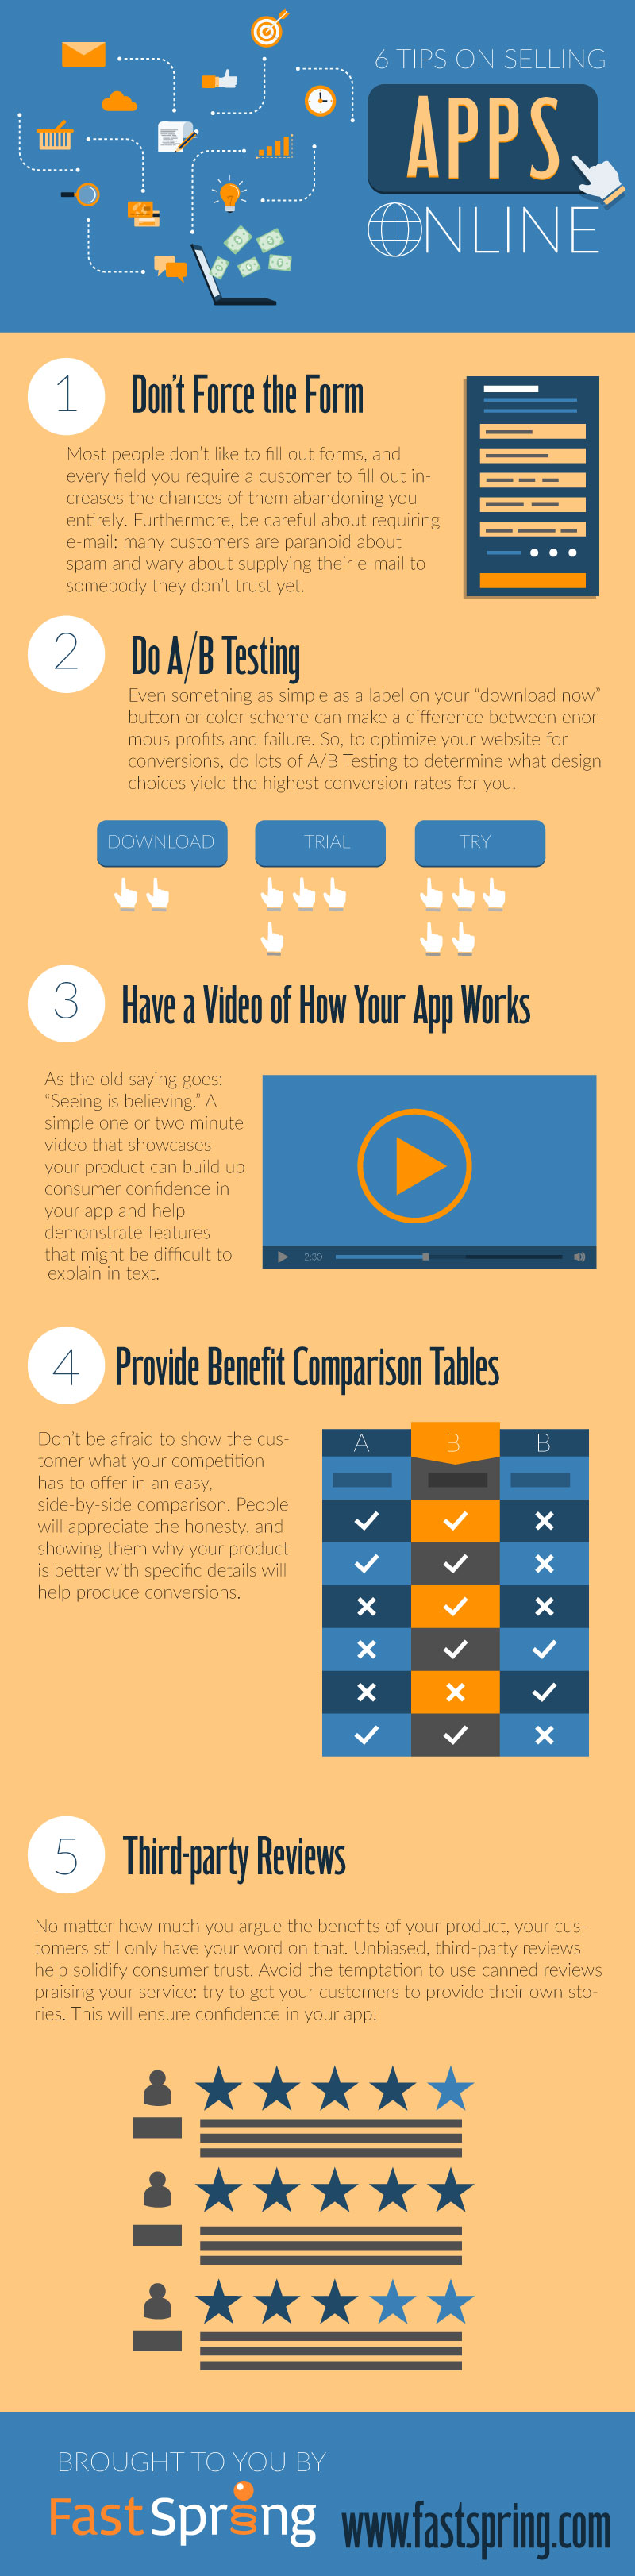 Infographic: 6 Tips for Selling Apps Online